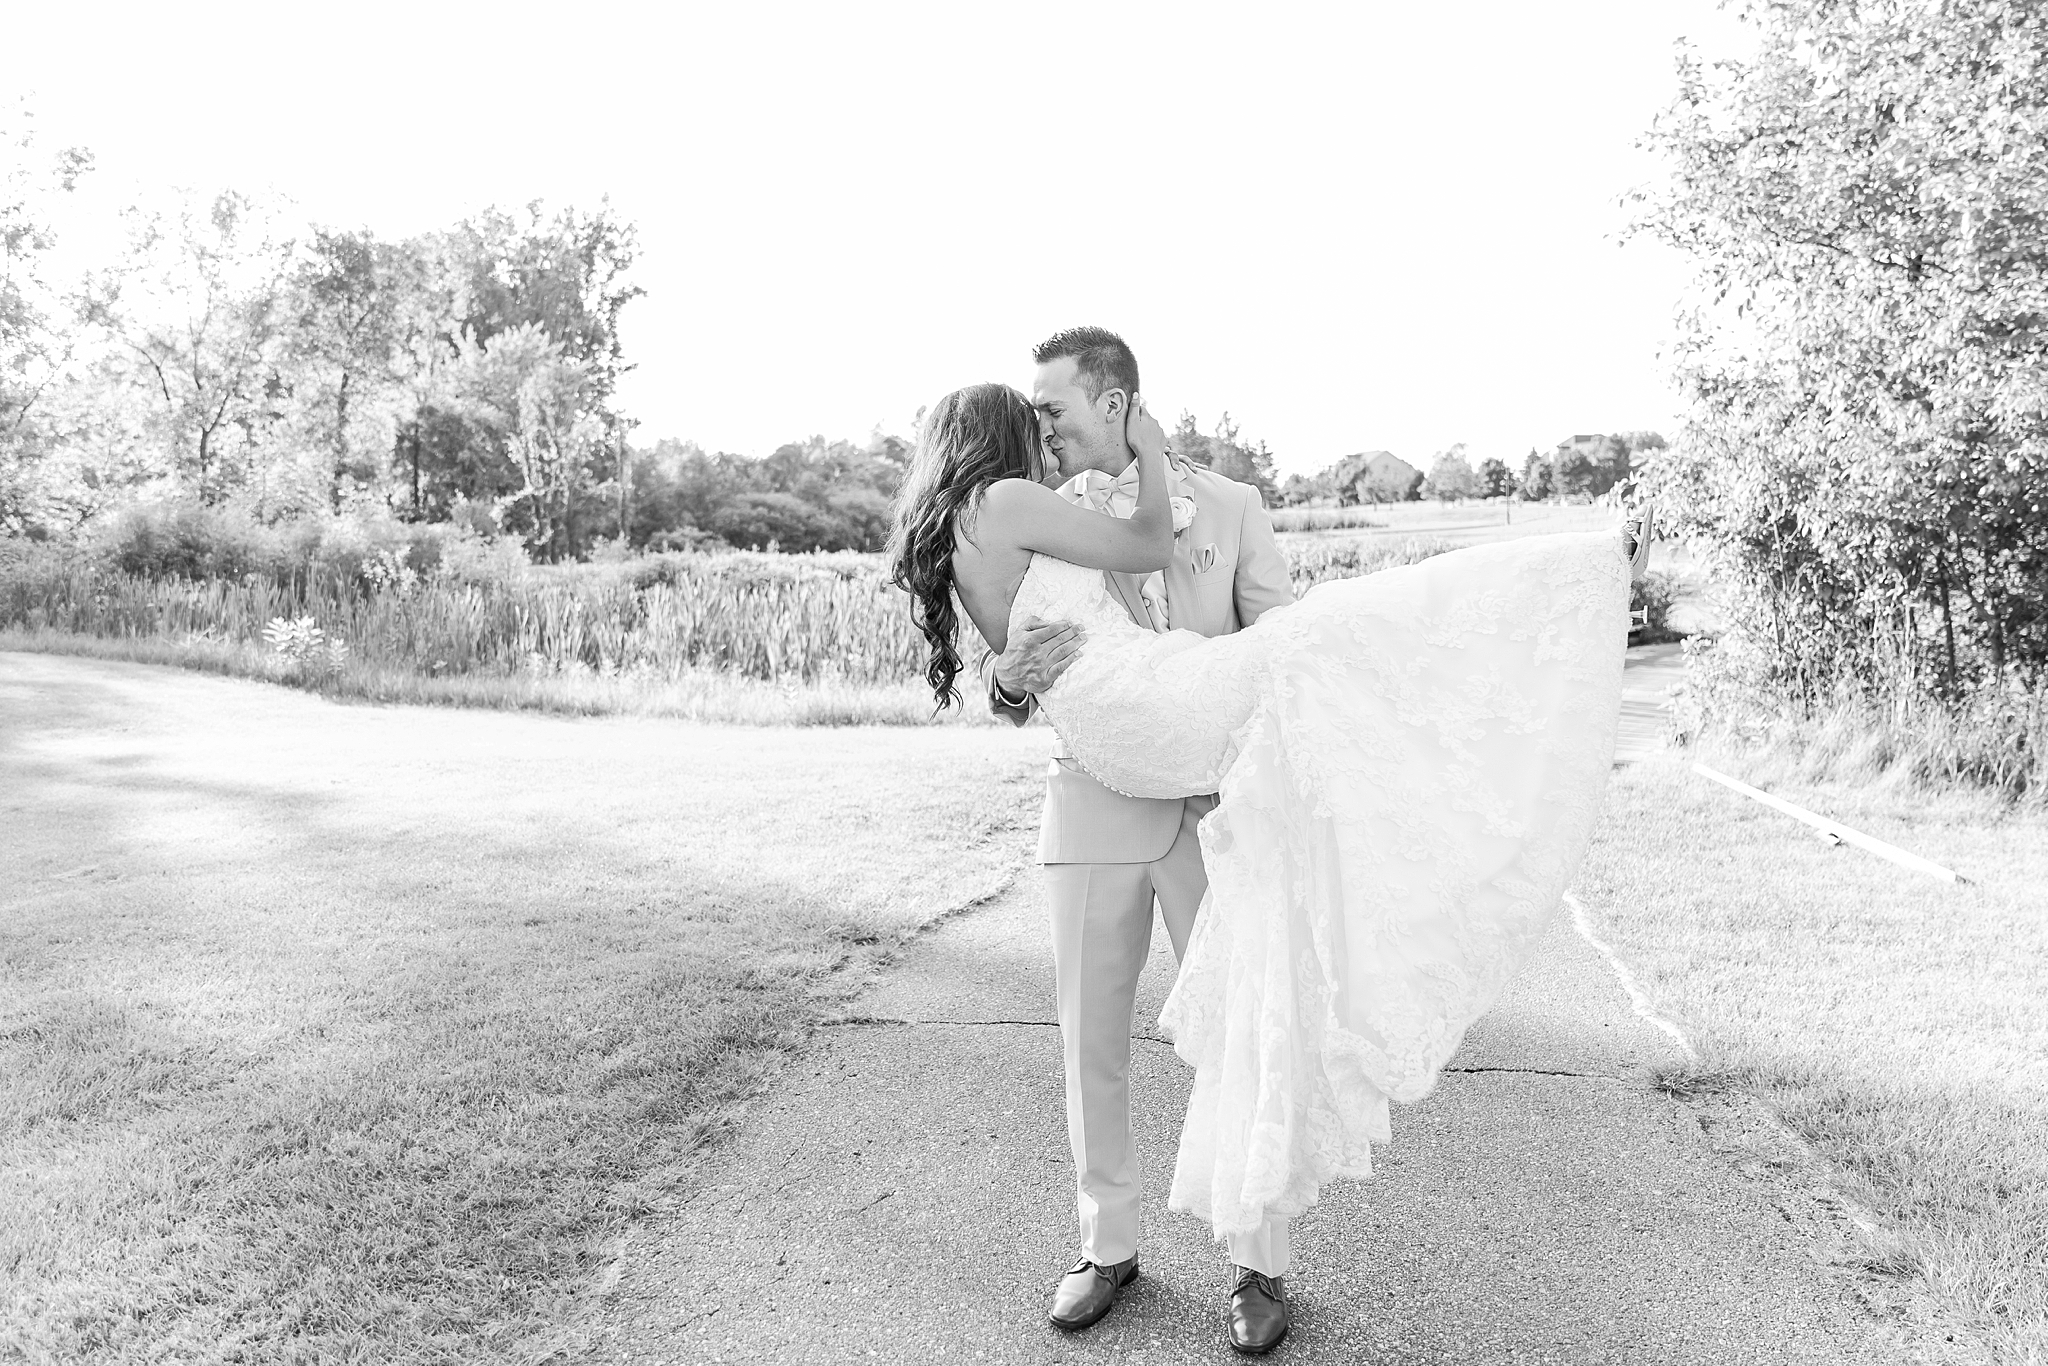 joyful-romantic-modern-laid-back-wedding-photography-in-detroit-ann-arbor-northern-mi-and-chicago-by-courtney-carolyn-photography_0017.jpg